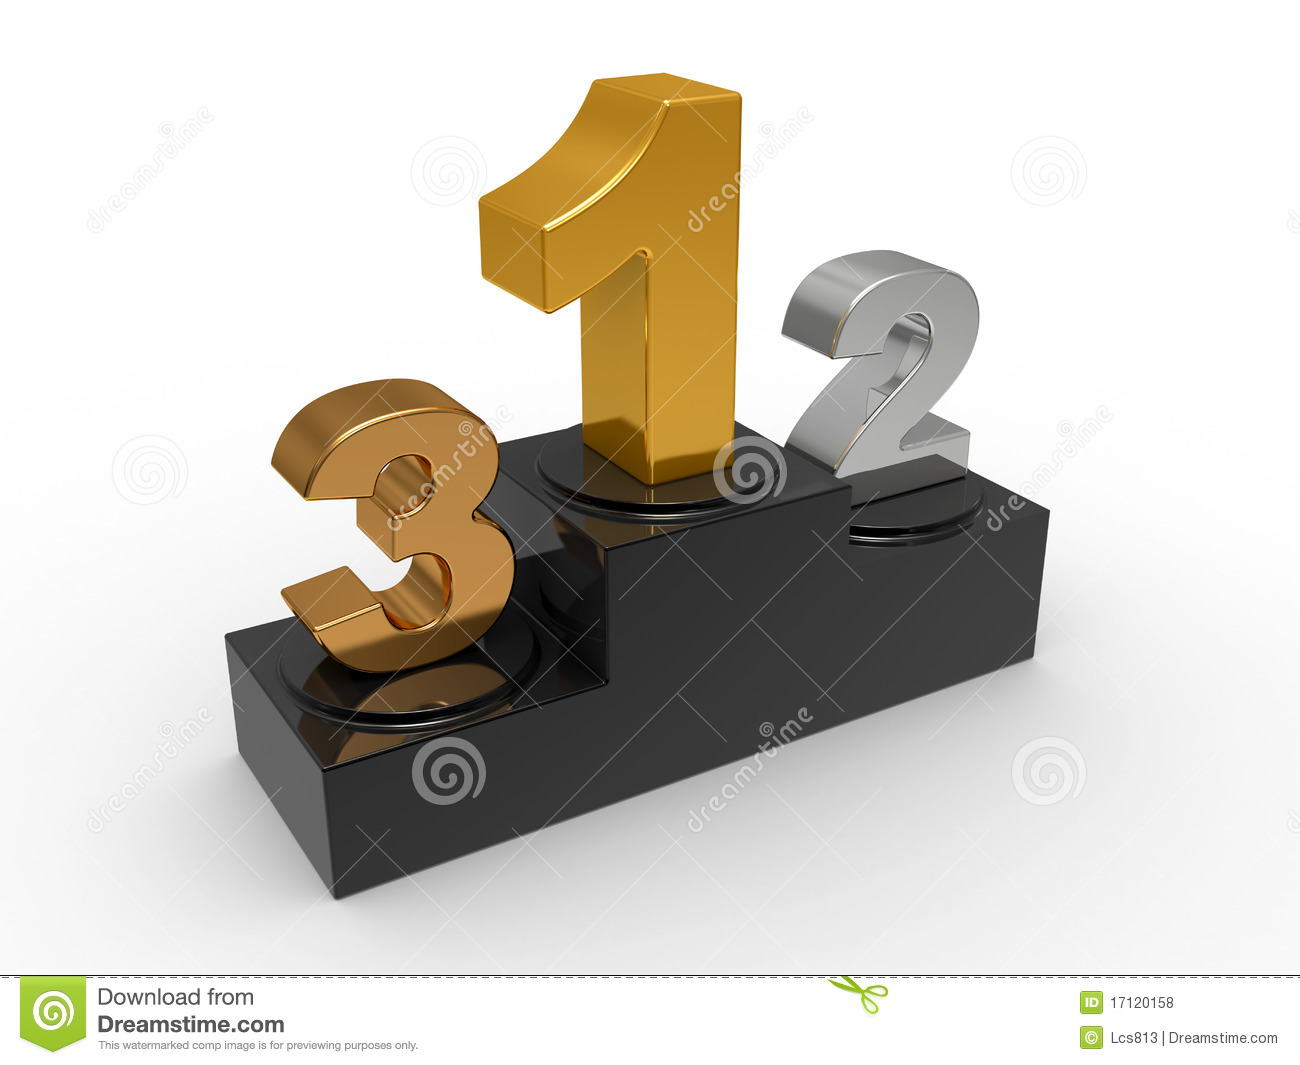 2nd place stock vector illustration royalty free 2nd place clipart - 1st 2nd And 3rd Place Royalty Free Stock Photos Image